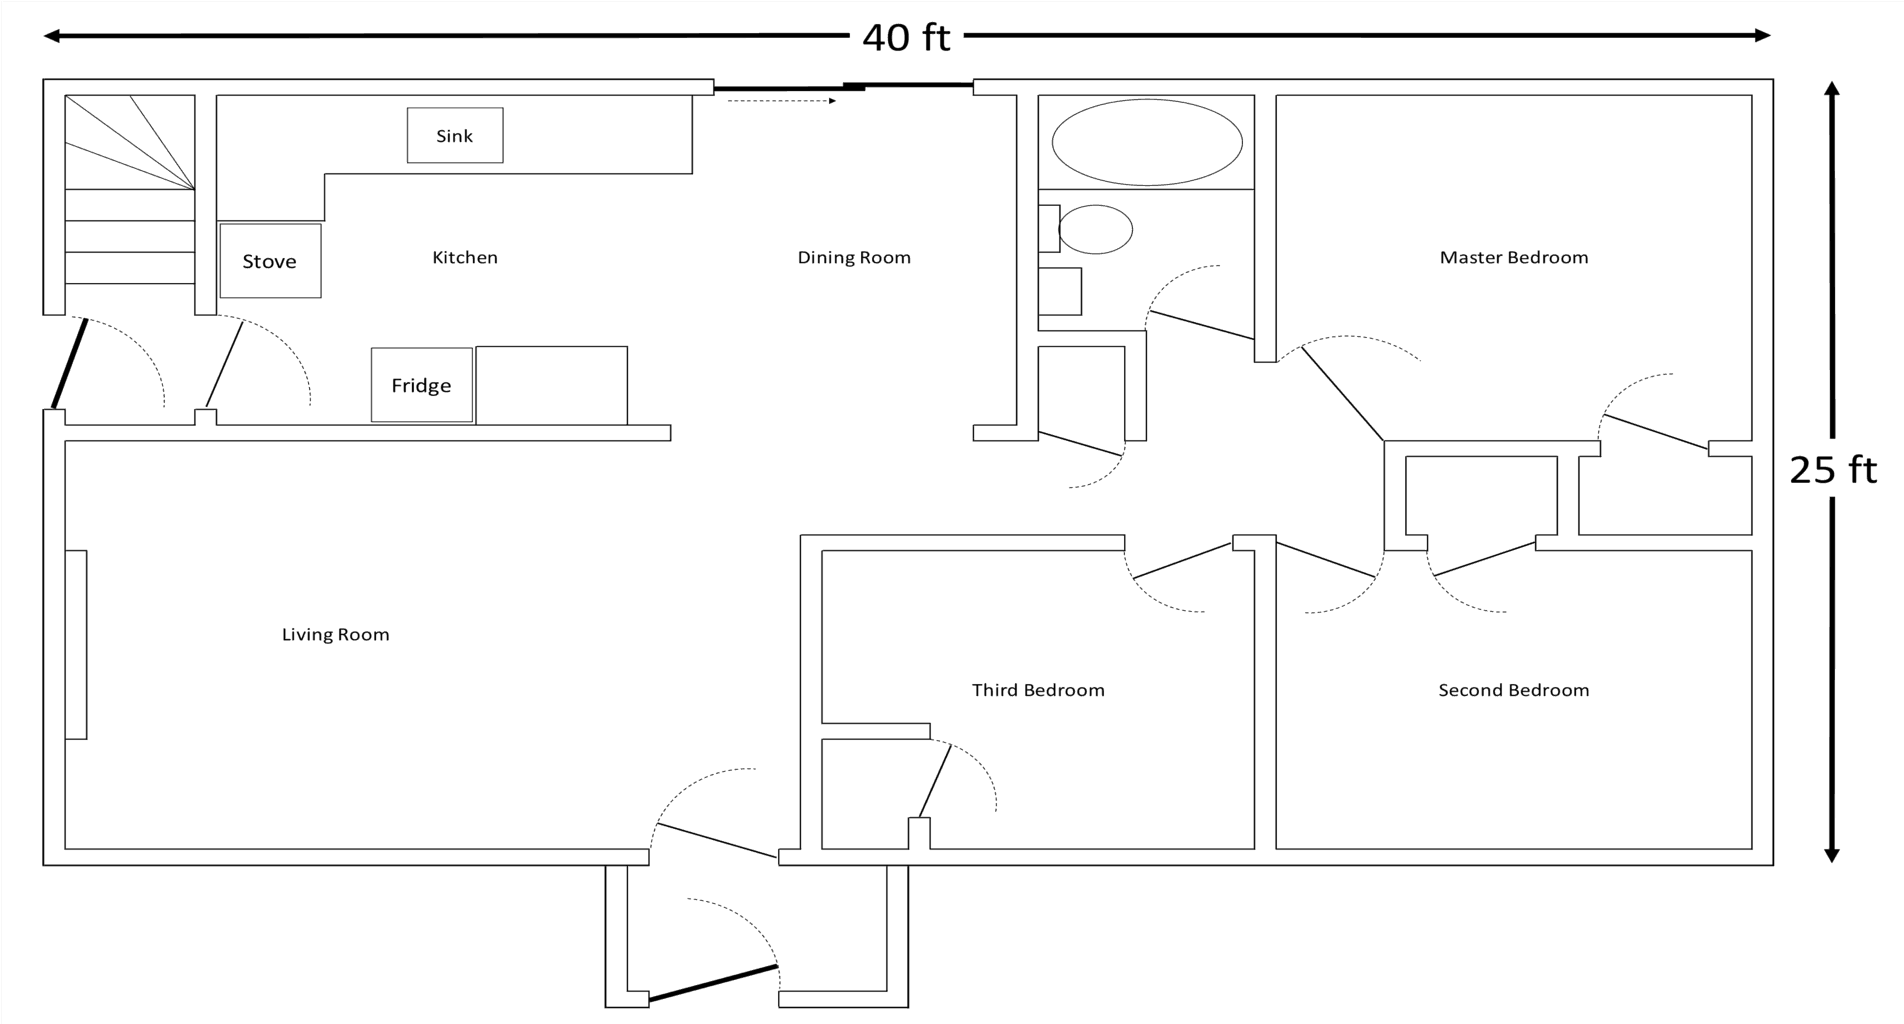 (i Apologize Profusely To Any Architects Reading This For My Poorquality  Floor Plan)